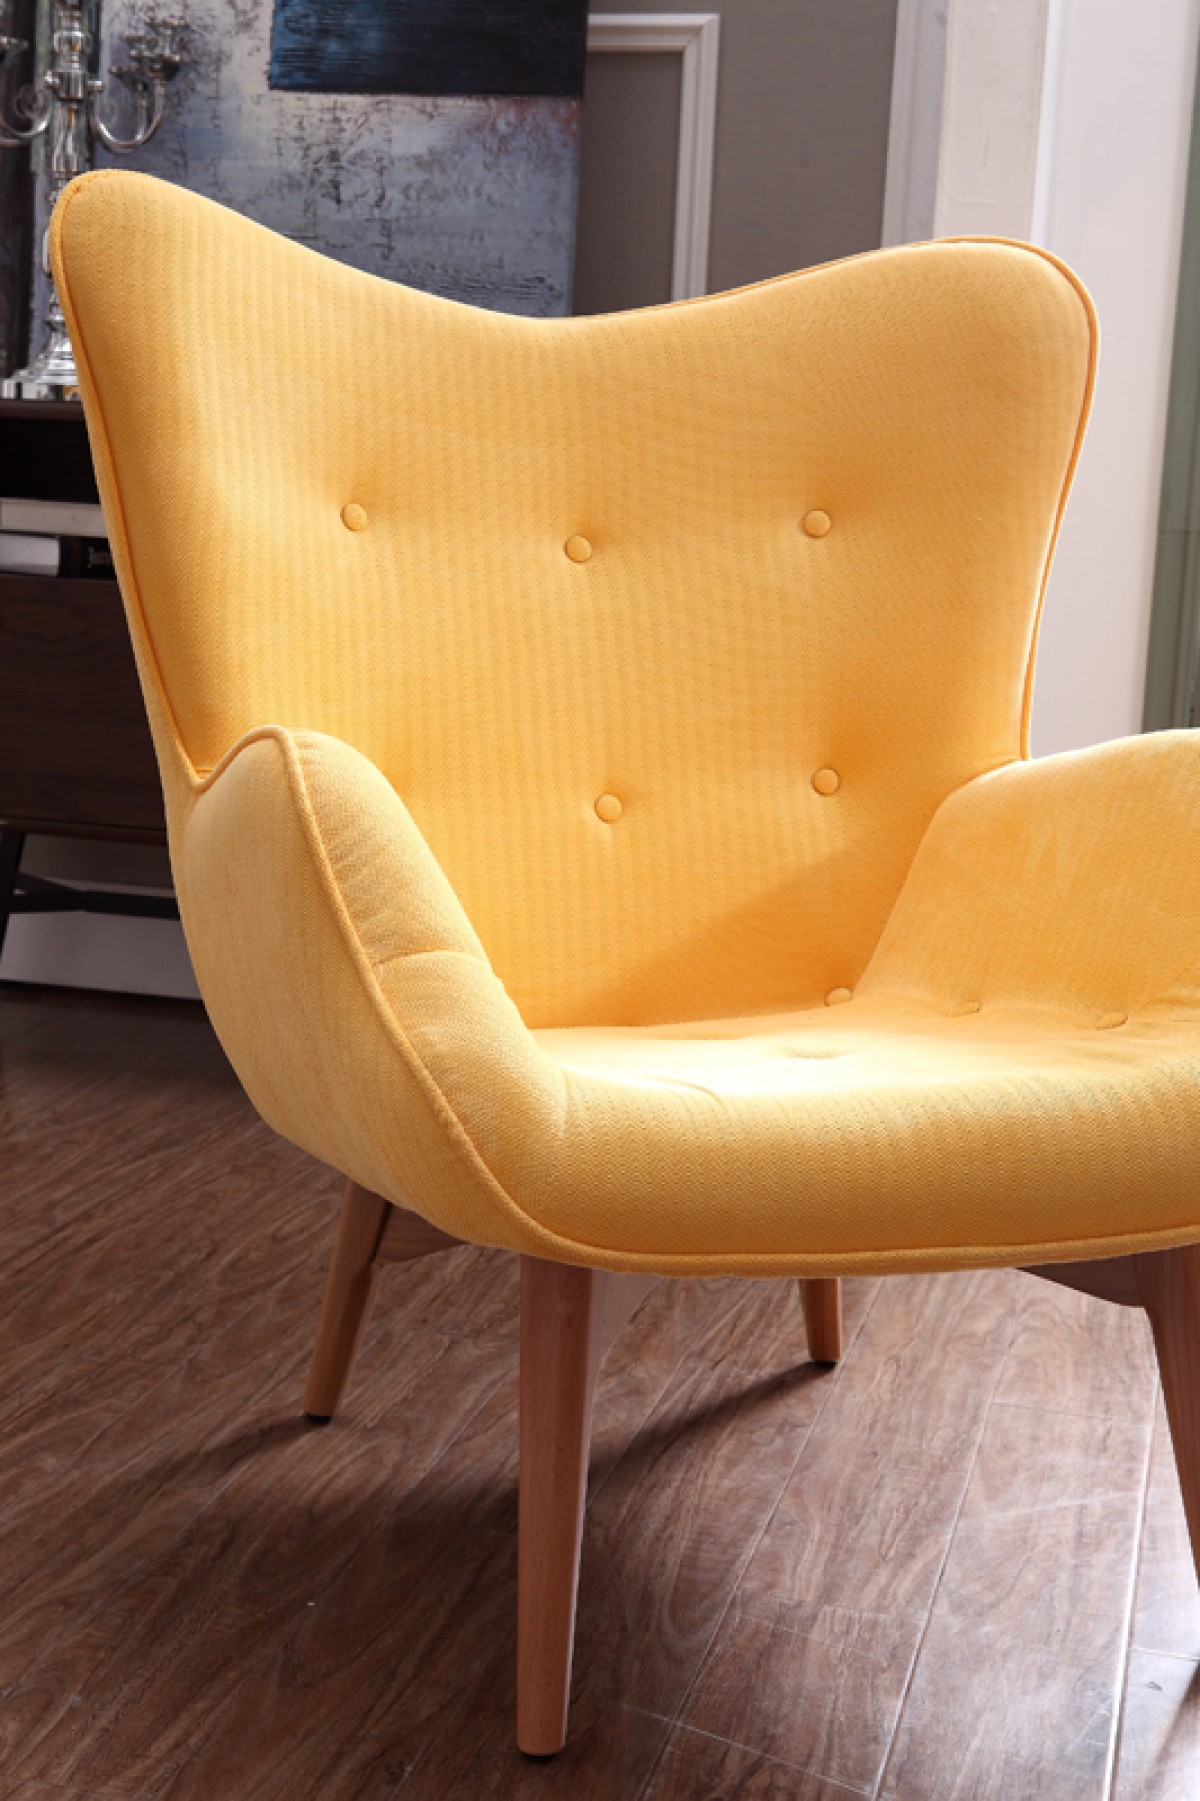 Cozy Yellow Fabric Chair With Ottoman Cleveland Ohio Vig